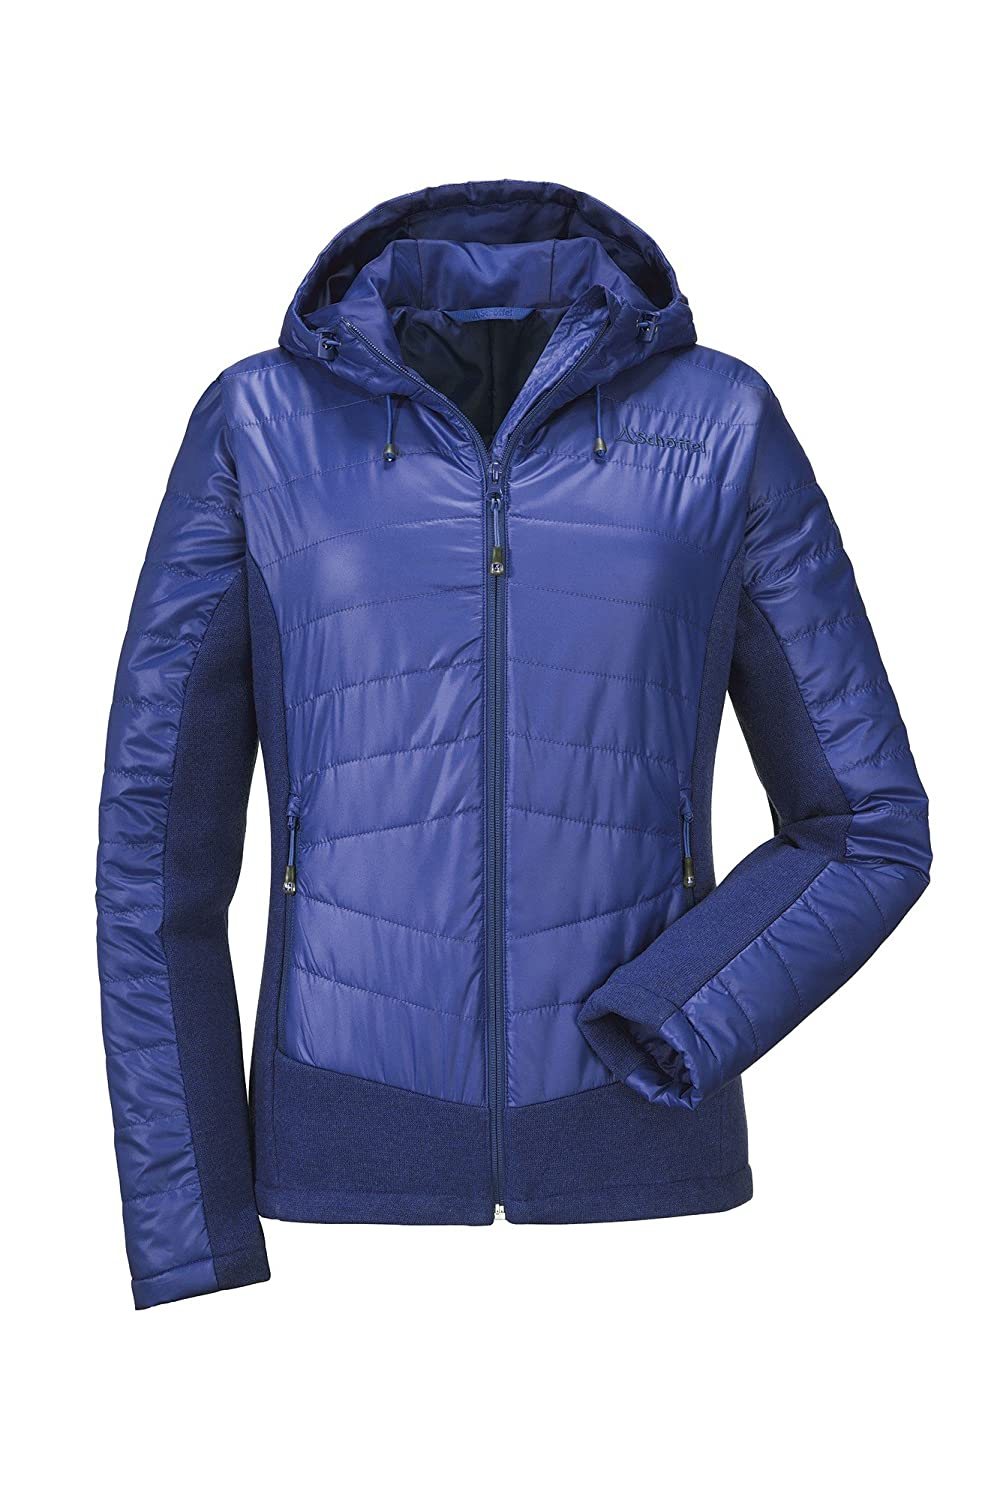 SCHÖFFEL Damen Daune Thermojac Tuva, Blue Ribbon, 36, 20 11165 22494 8340